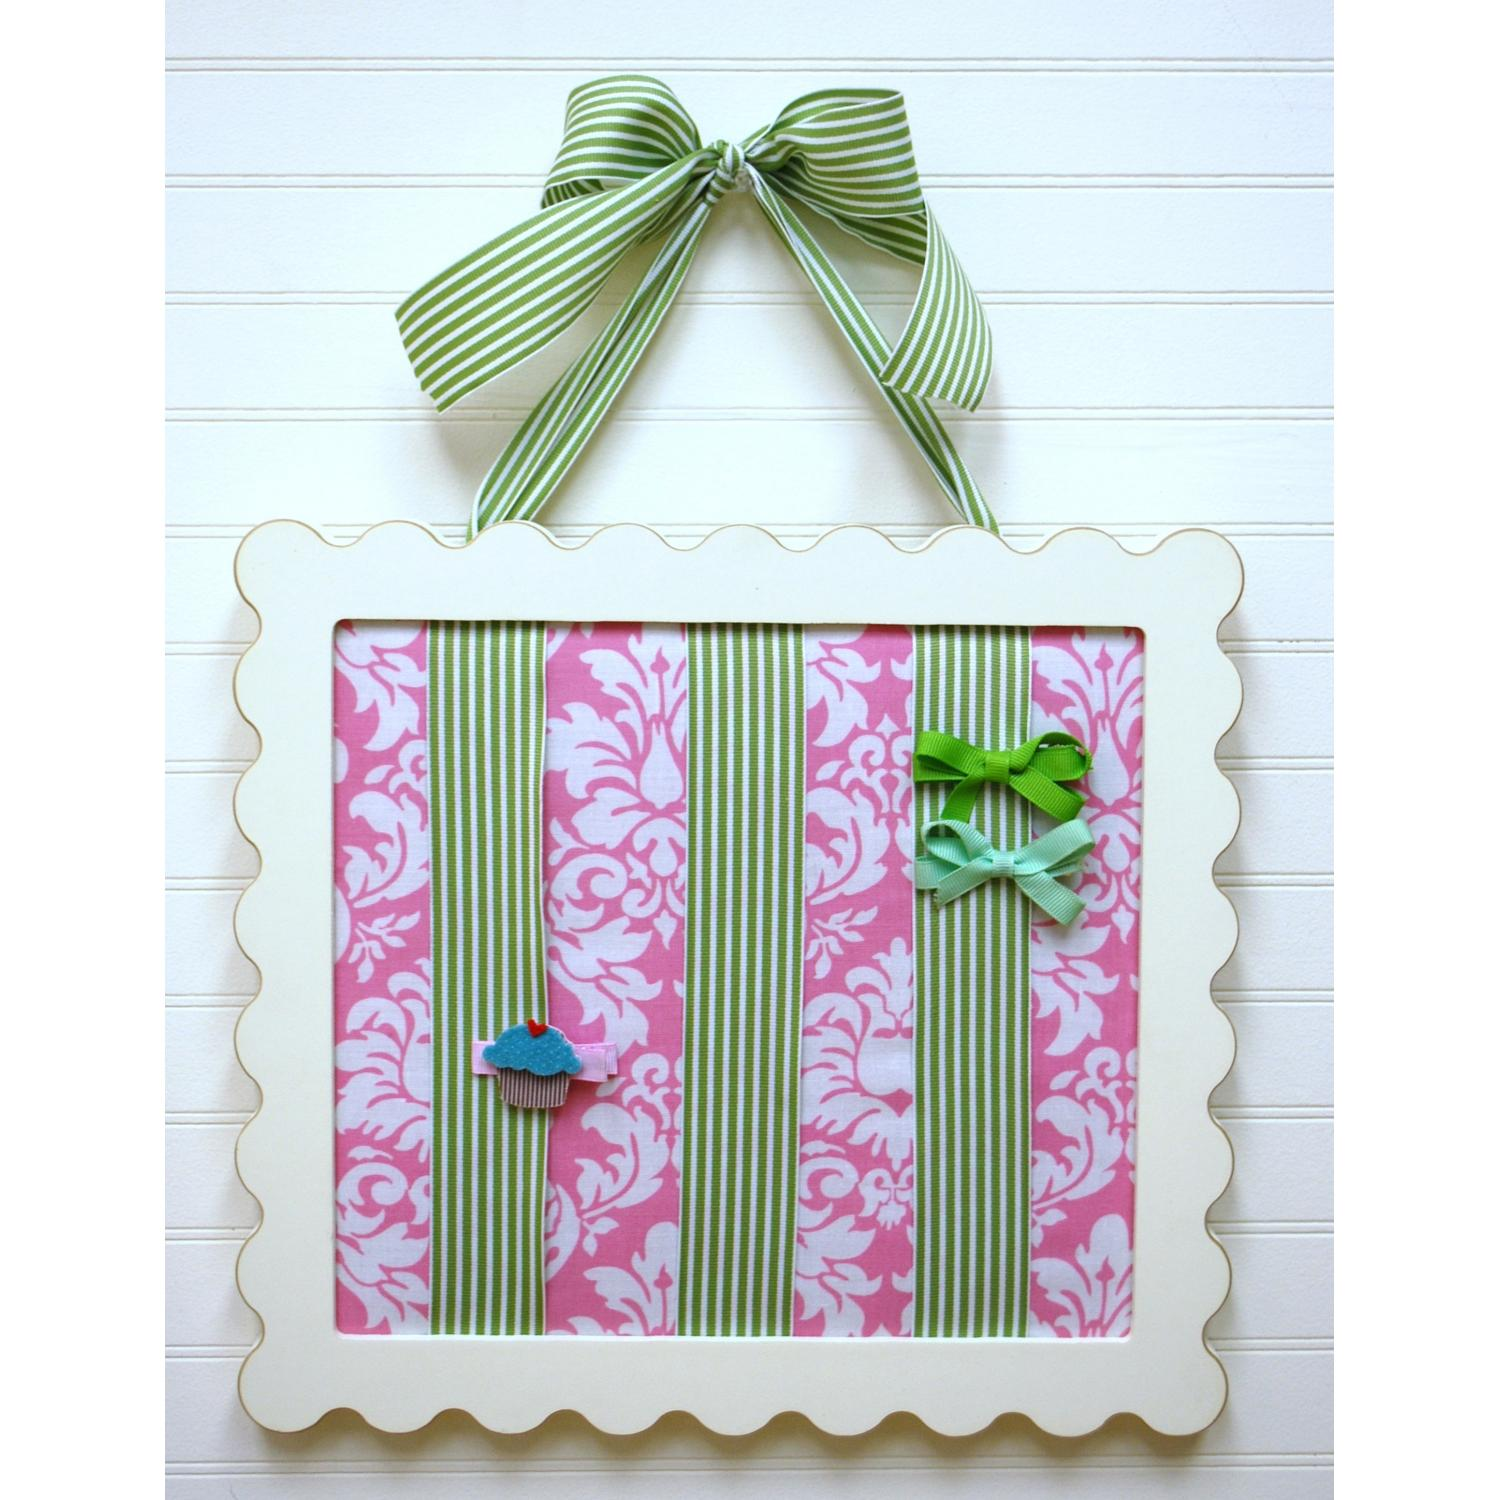 New Arrivals Barrette Holder - Pink Taffy With Green Stripe Ribbon